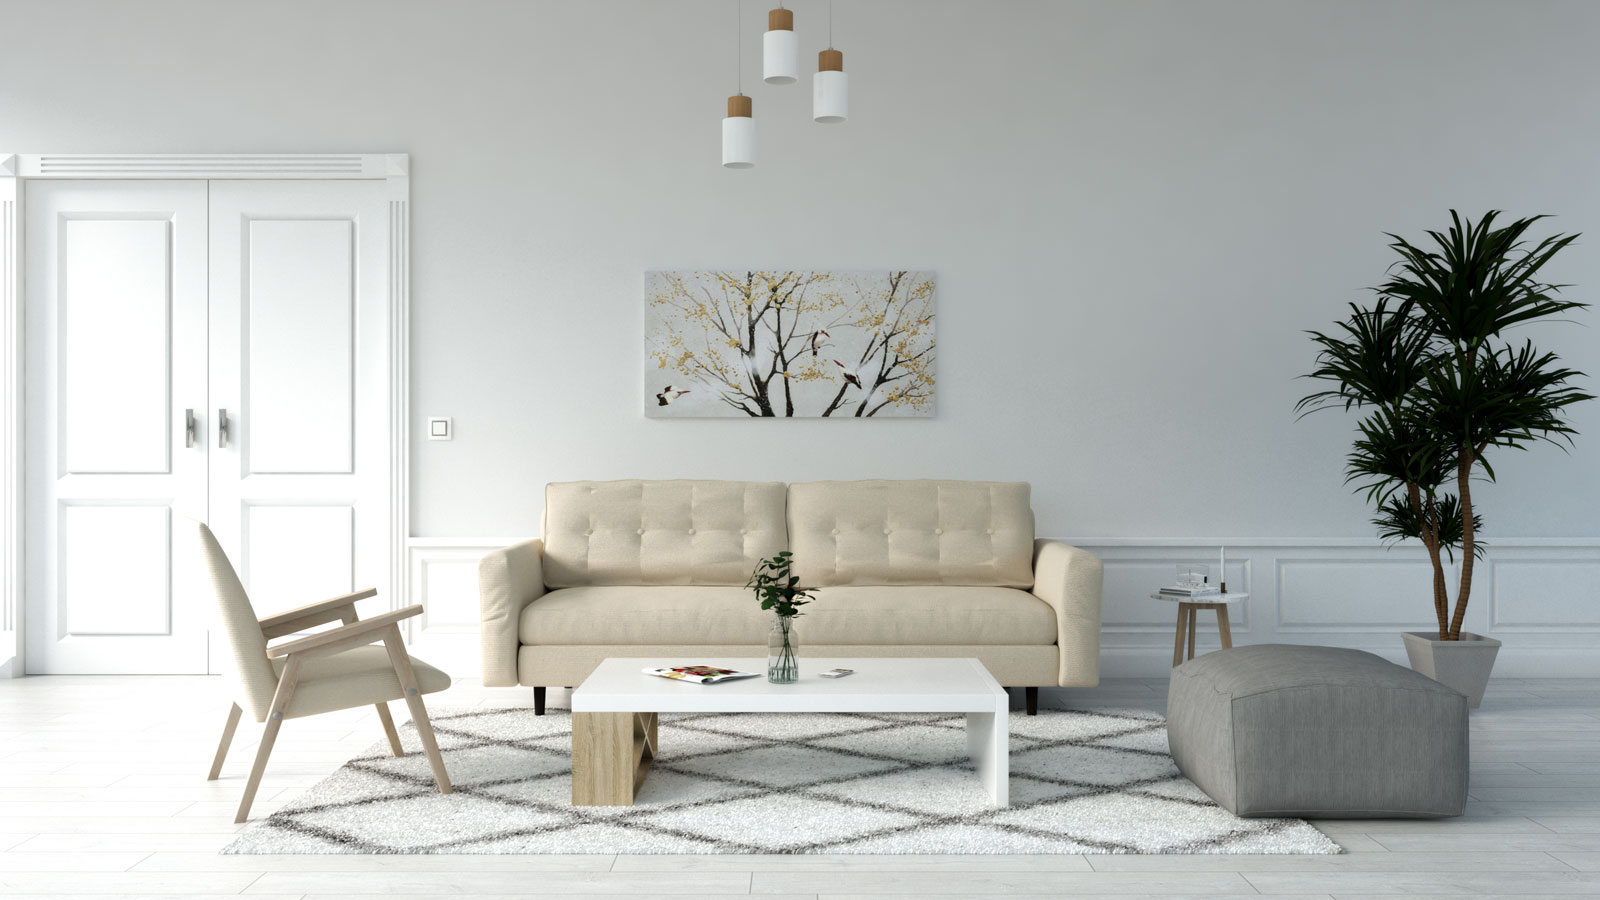 White rug with beige couch